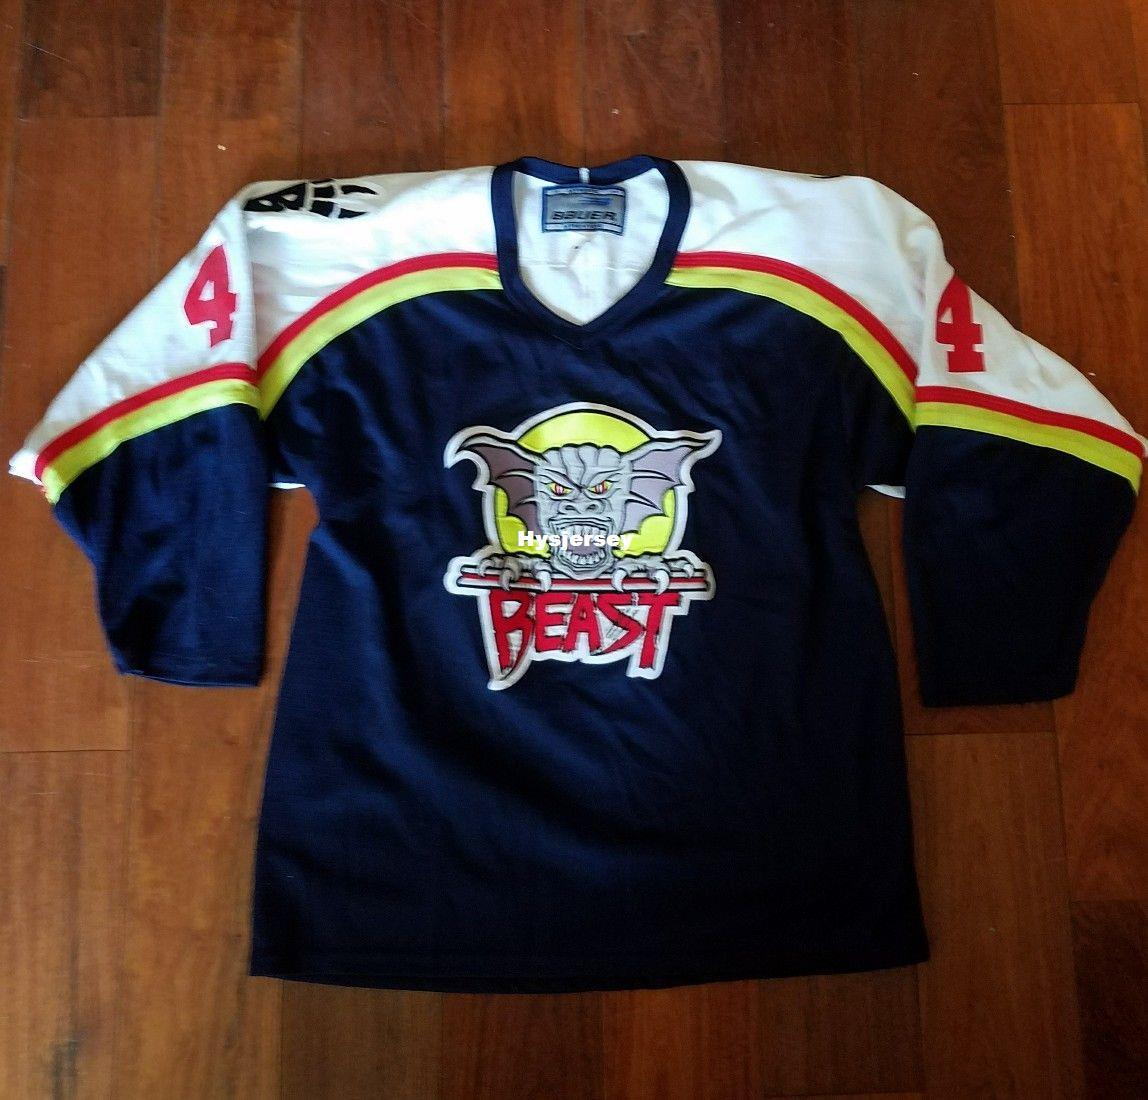 e0b01b60e 2019 New Cheap Custom Vintage 90s Beast Of New Haven Team Issued Jerseys  Sweater Stitched Men S Hockey Jersey From Hysjersey